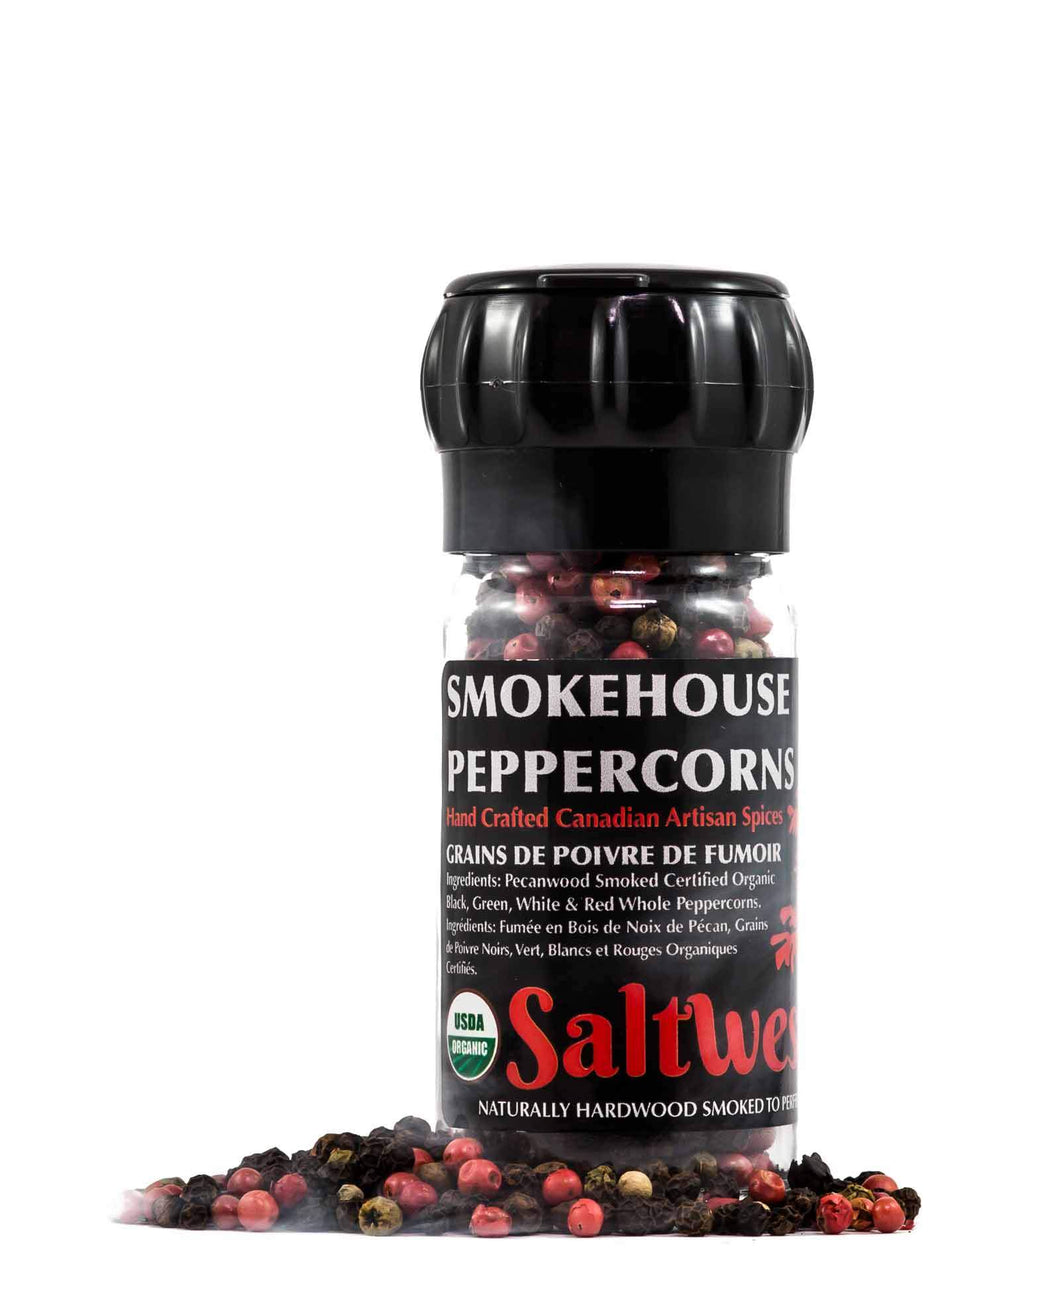 SmokeHouse Peppercorns Grinder 50g